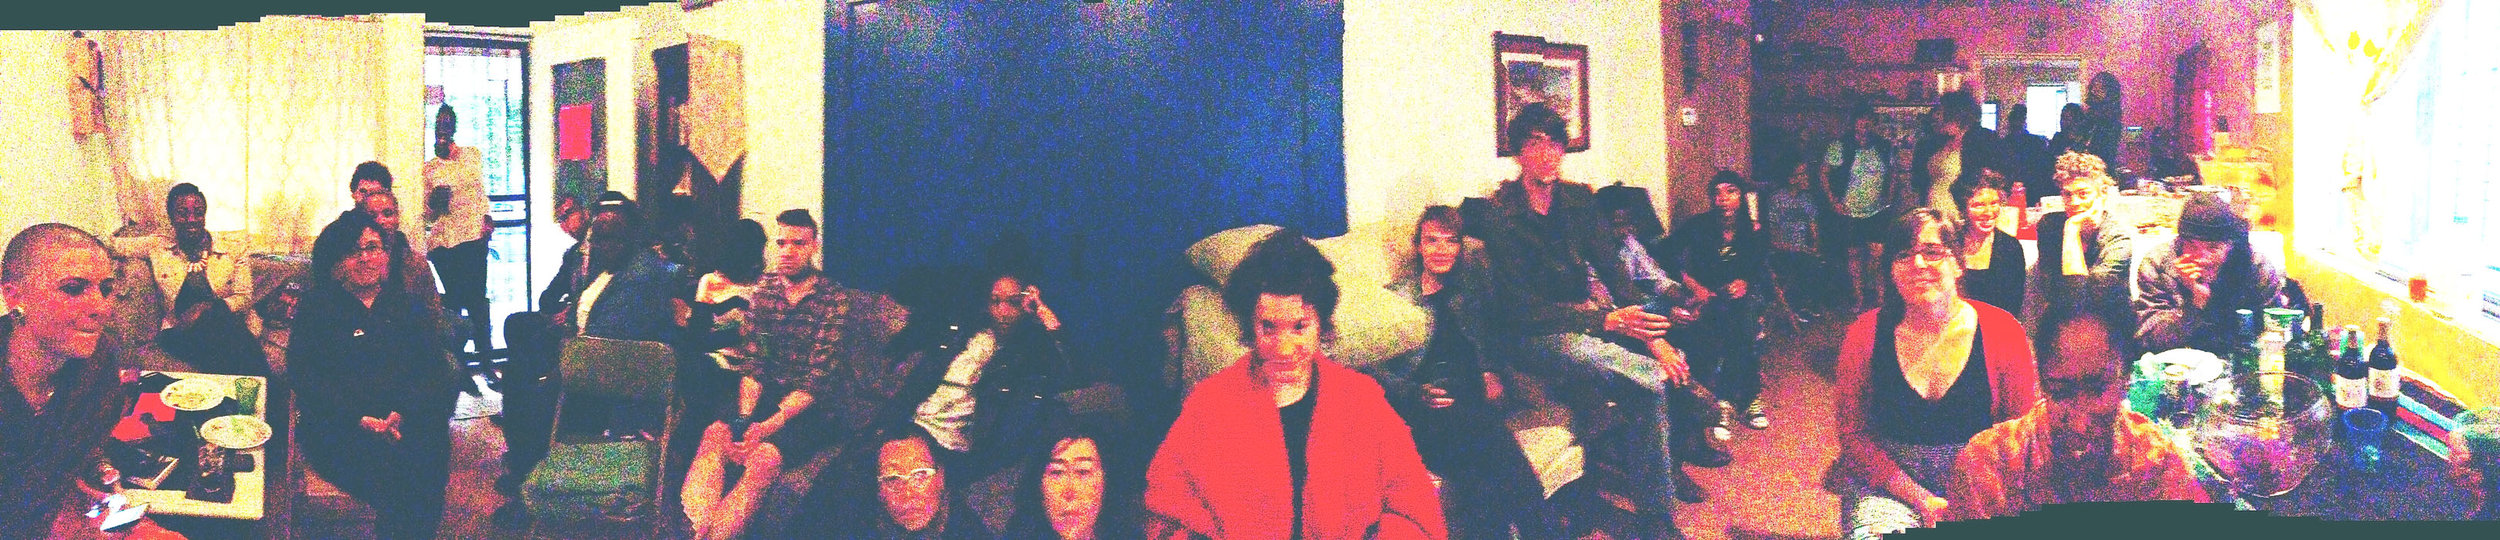 Party Panorama